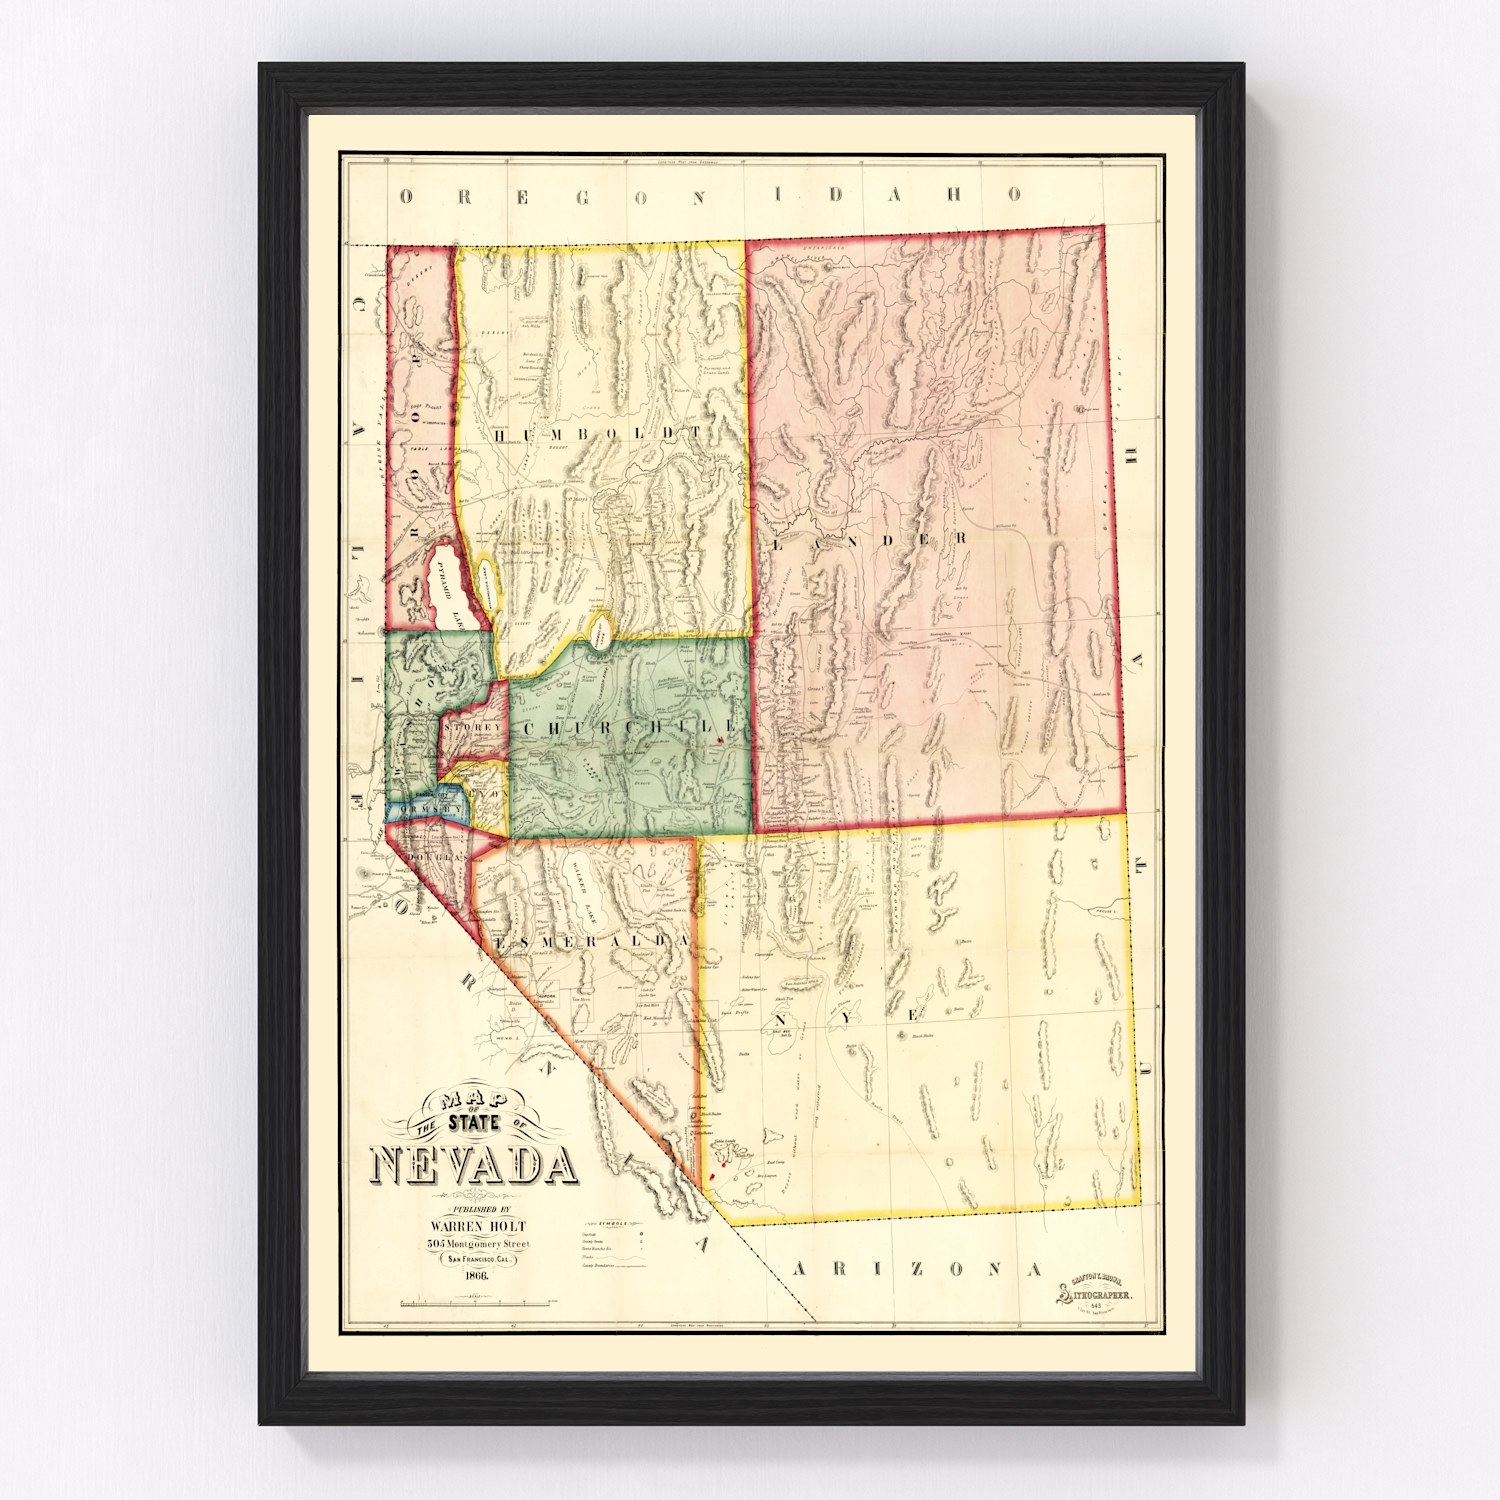 Vintage Map of Nevada, 1866